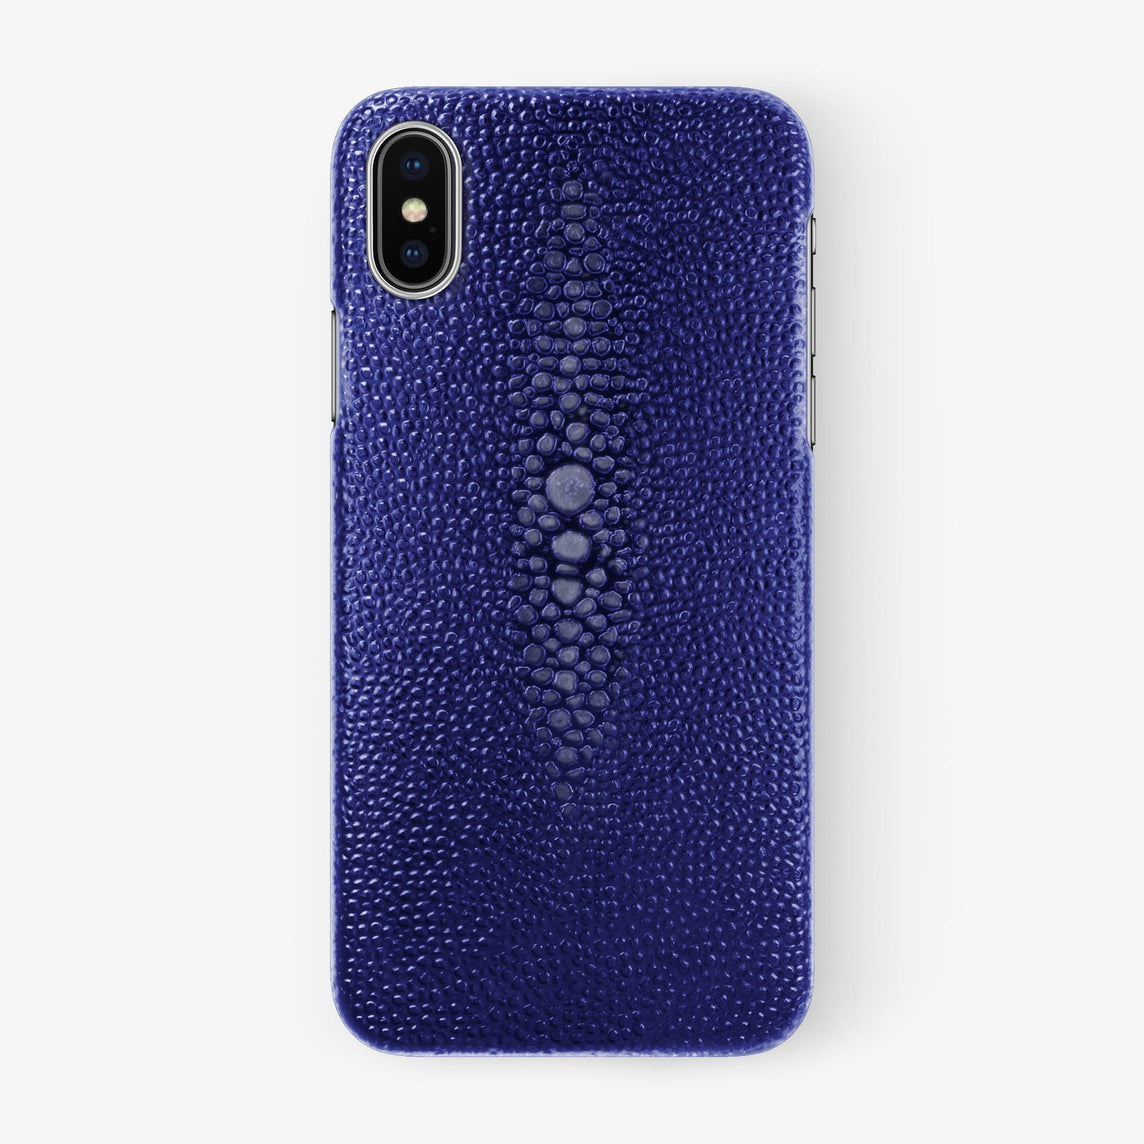 Stingray Case iPhone X/Xs | Blue - Stainless Steel